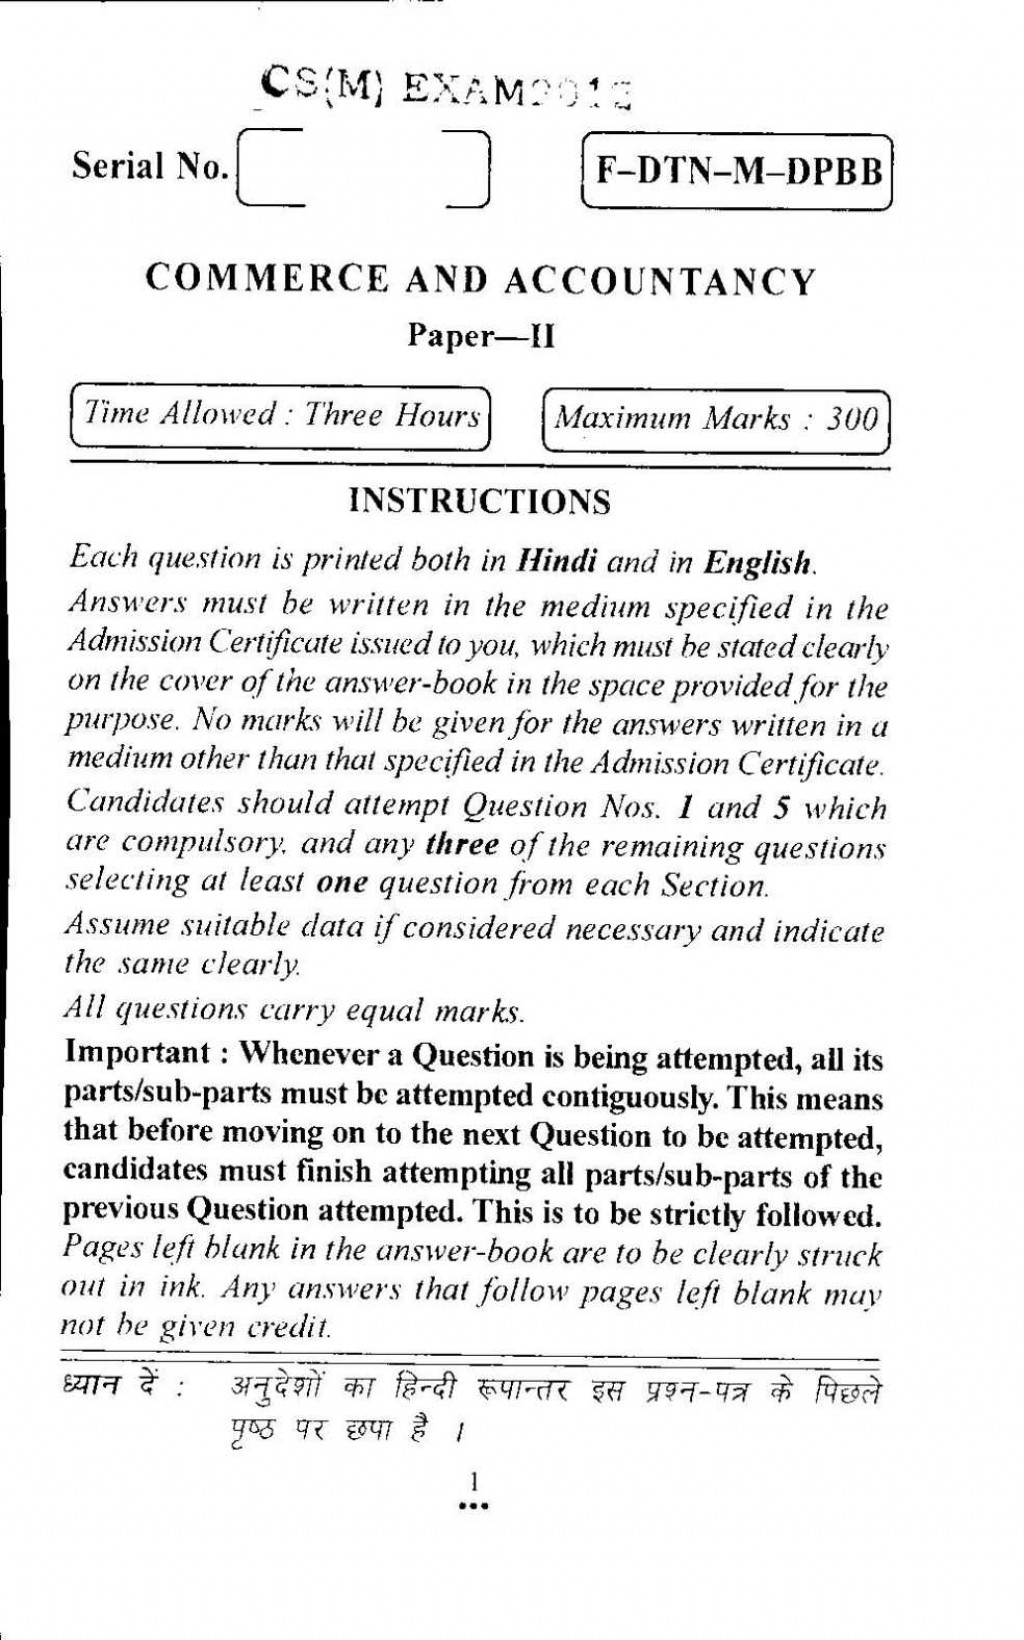 013 Essay Example Discrimination Civil Services Examination Commerce And Accountancy Paper Ii Previous Years Que Excellent Titles Age Topics Large